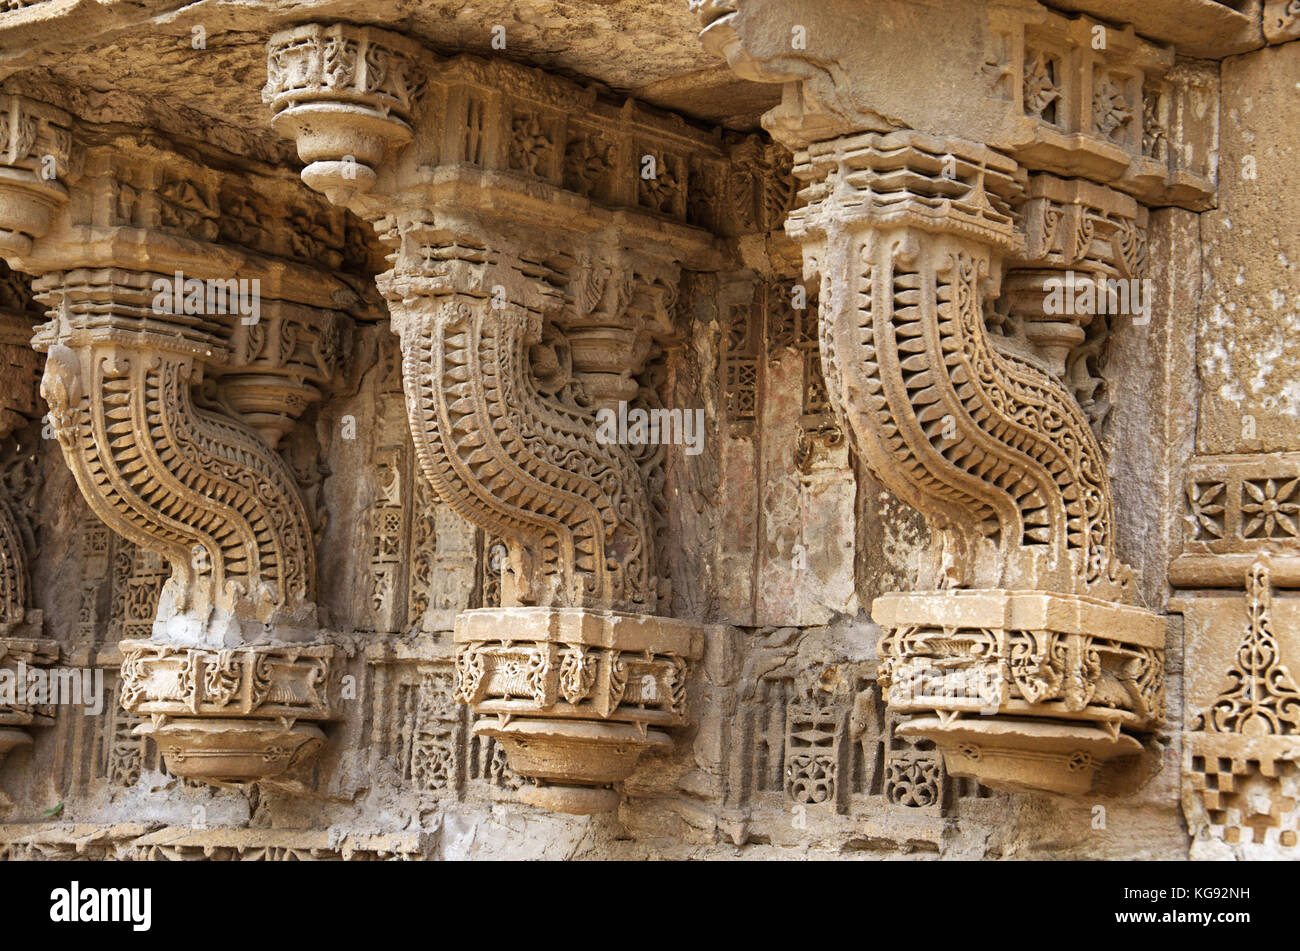 Carving details on the outer wall of Sai Masjid (Mosque), Ahmedabad, Gujarat, India - Stock Image